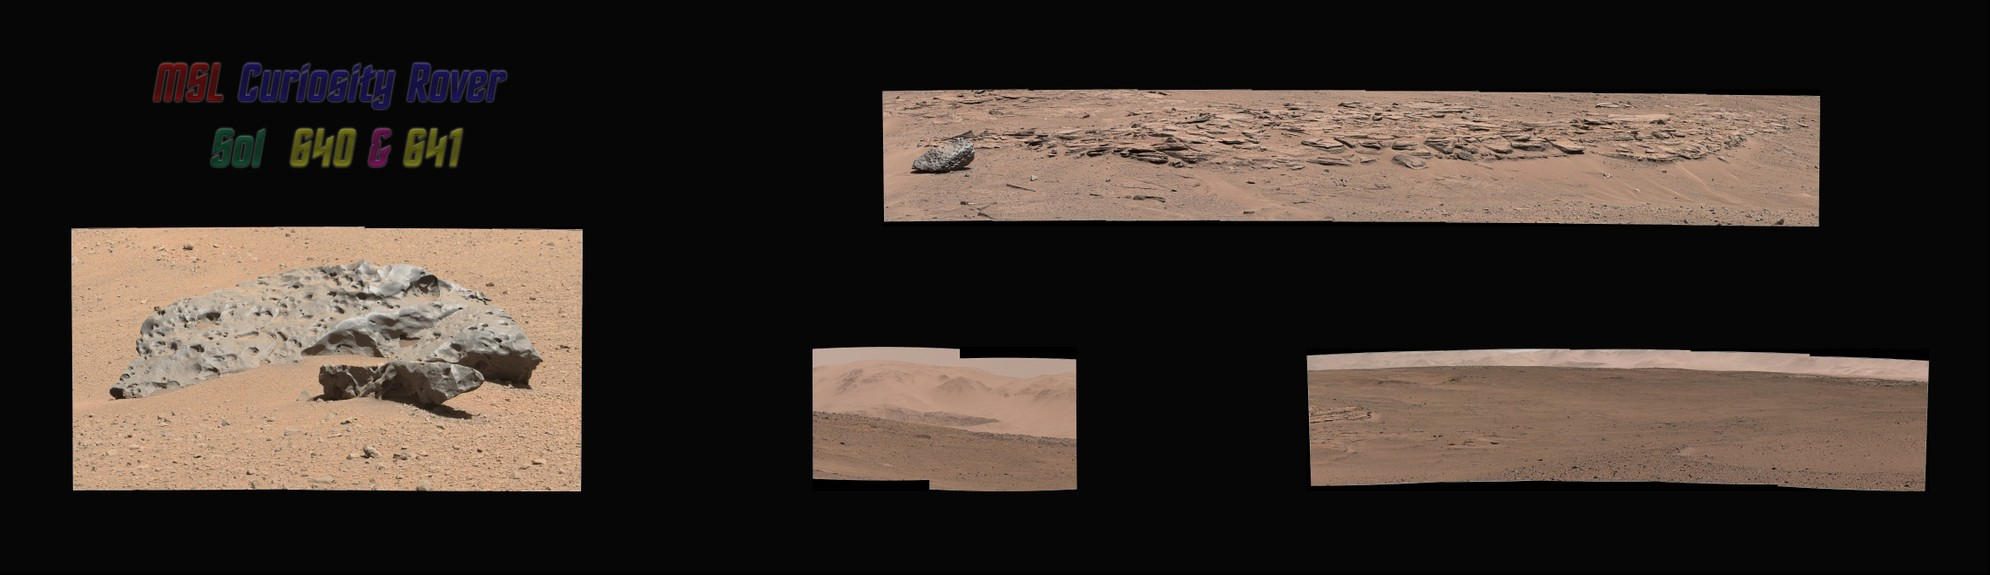 MSL Curiosity Rover Sol 640 & 641 Right & Left Mastcams [Jpeg W/filters]